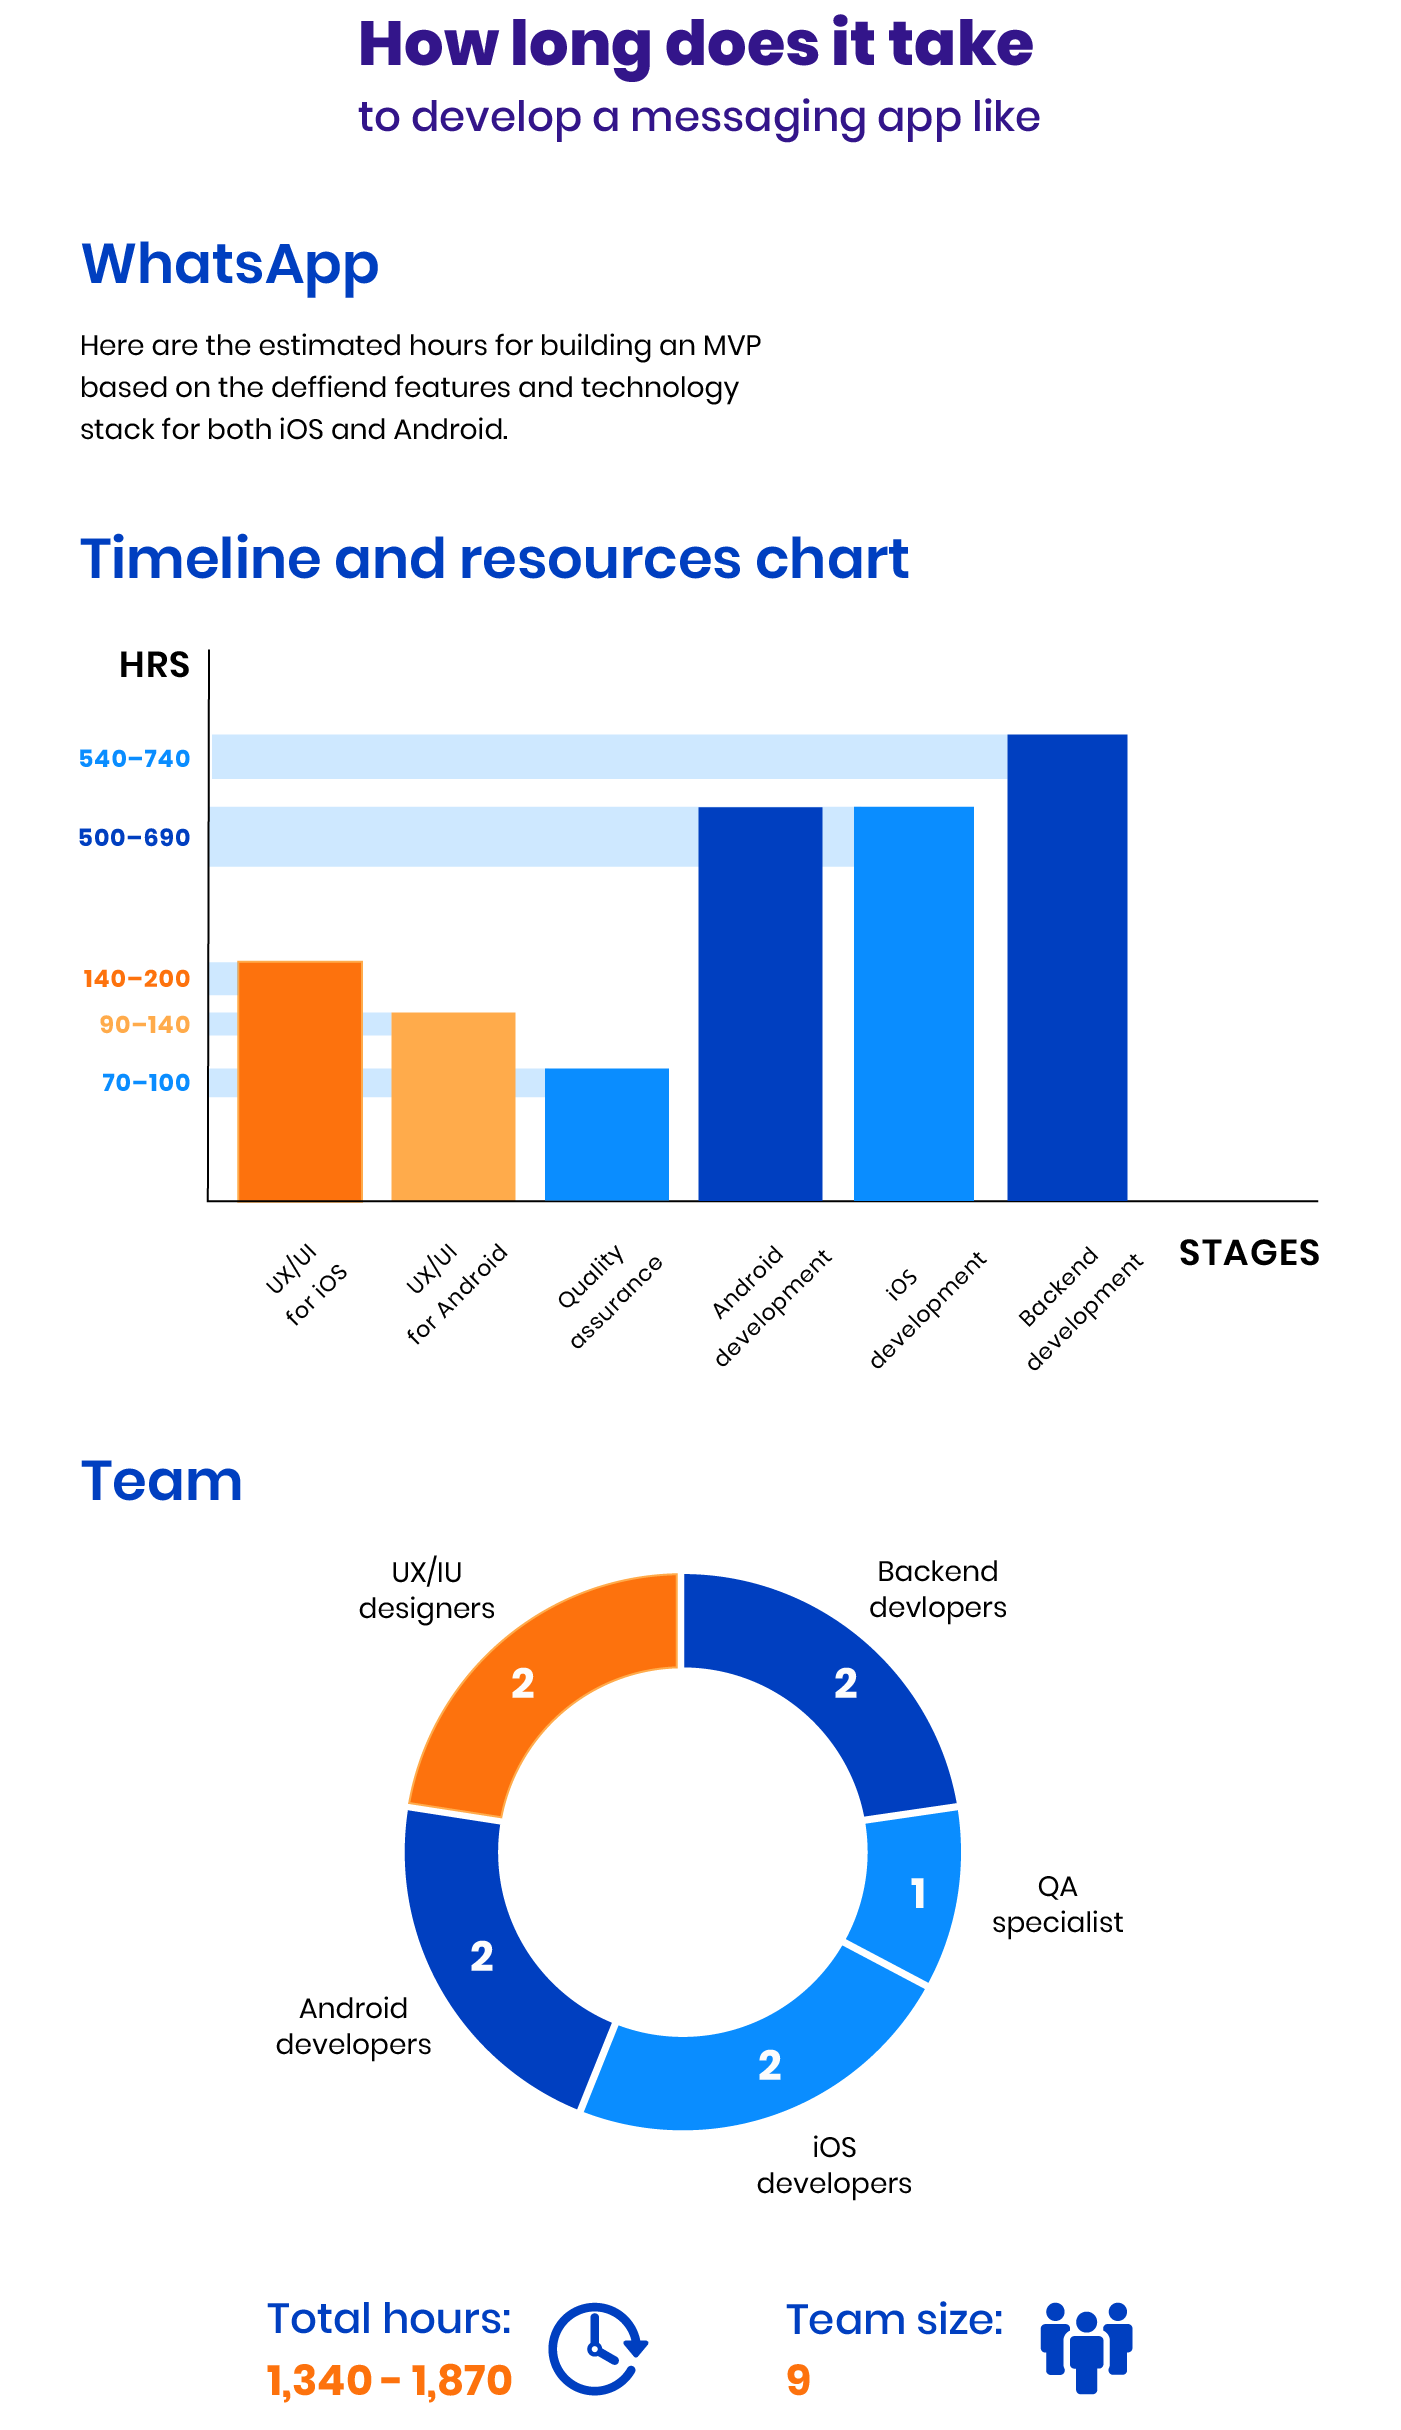 Timeline and resources chart for chat app development